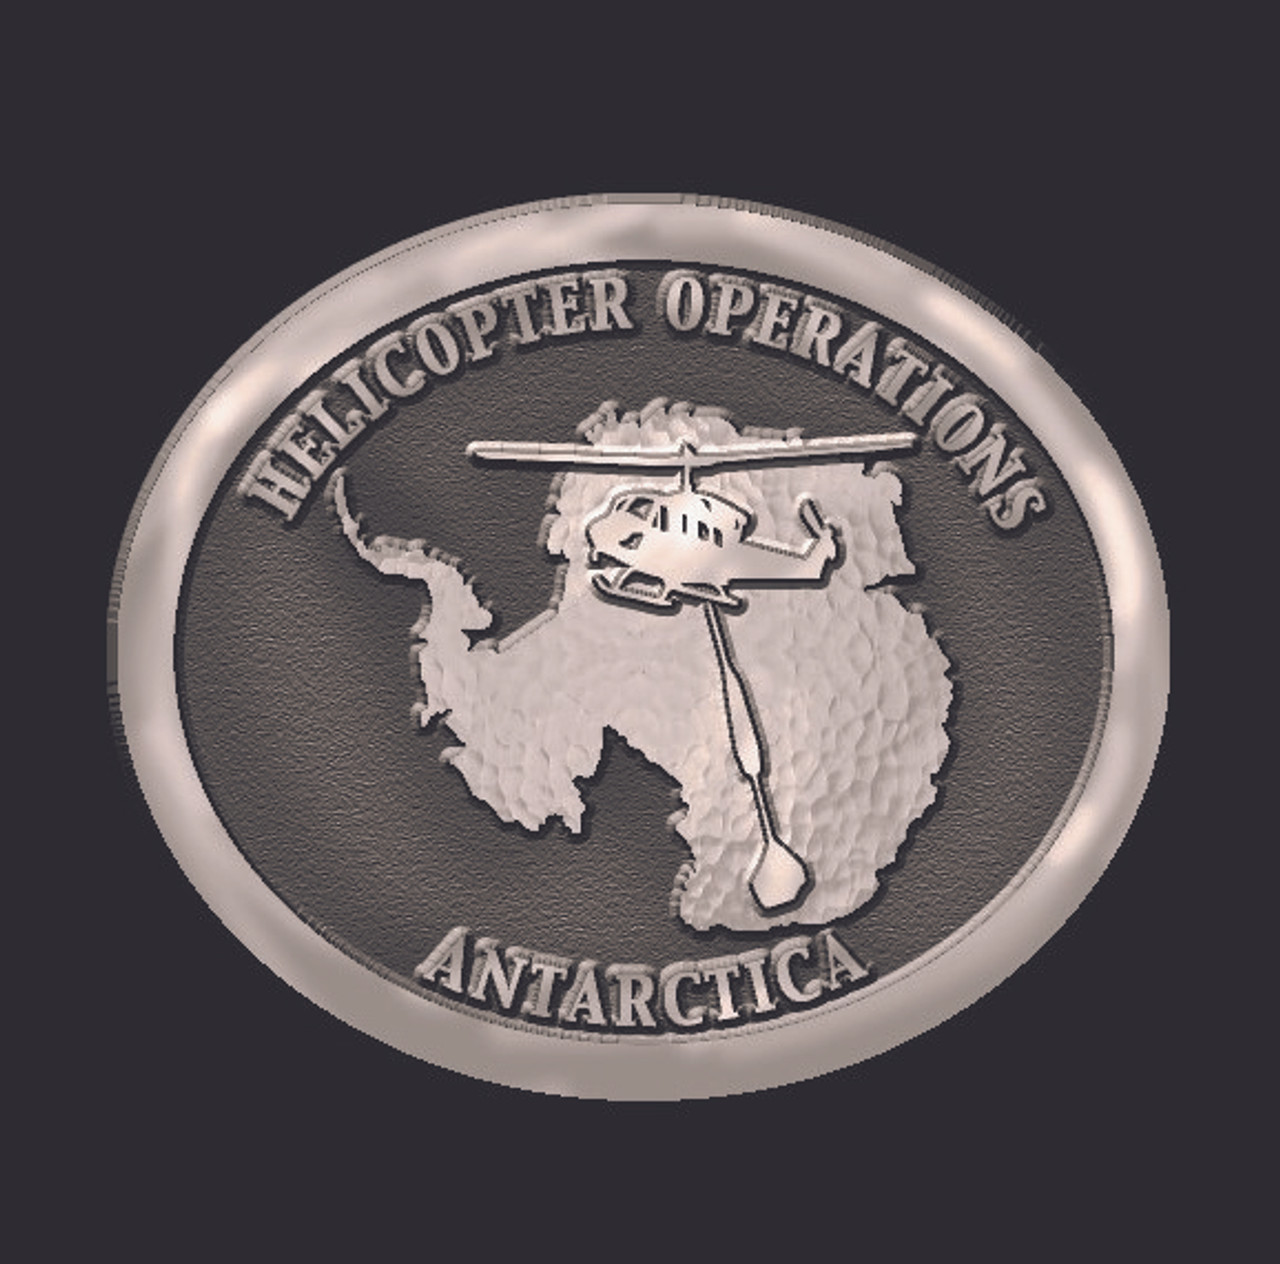 Helicopter Operations Antarctica Buckle (RESTRICTED)